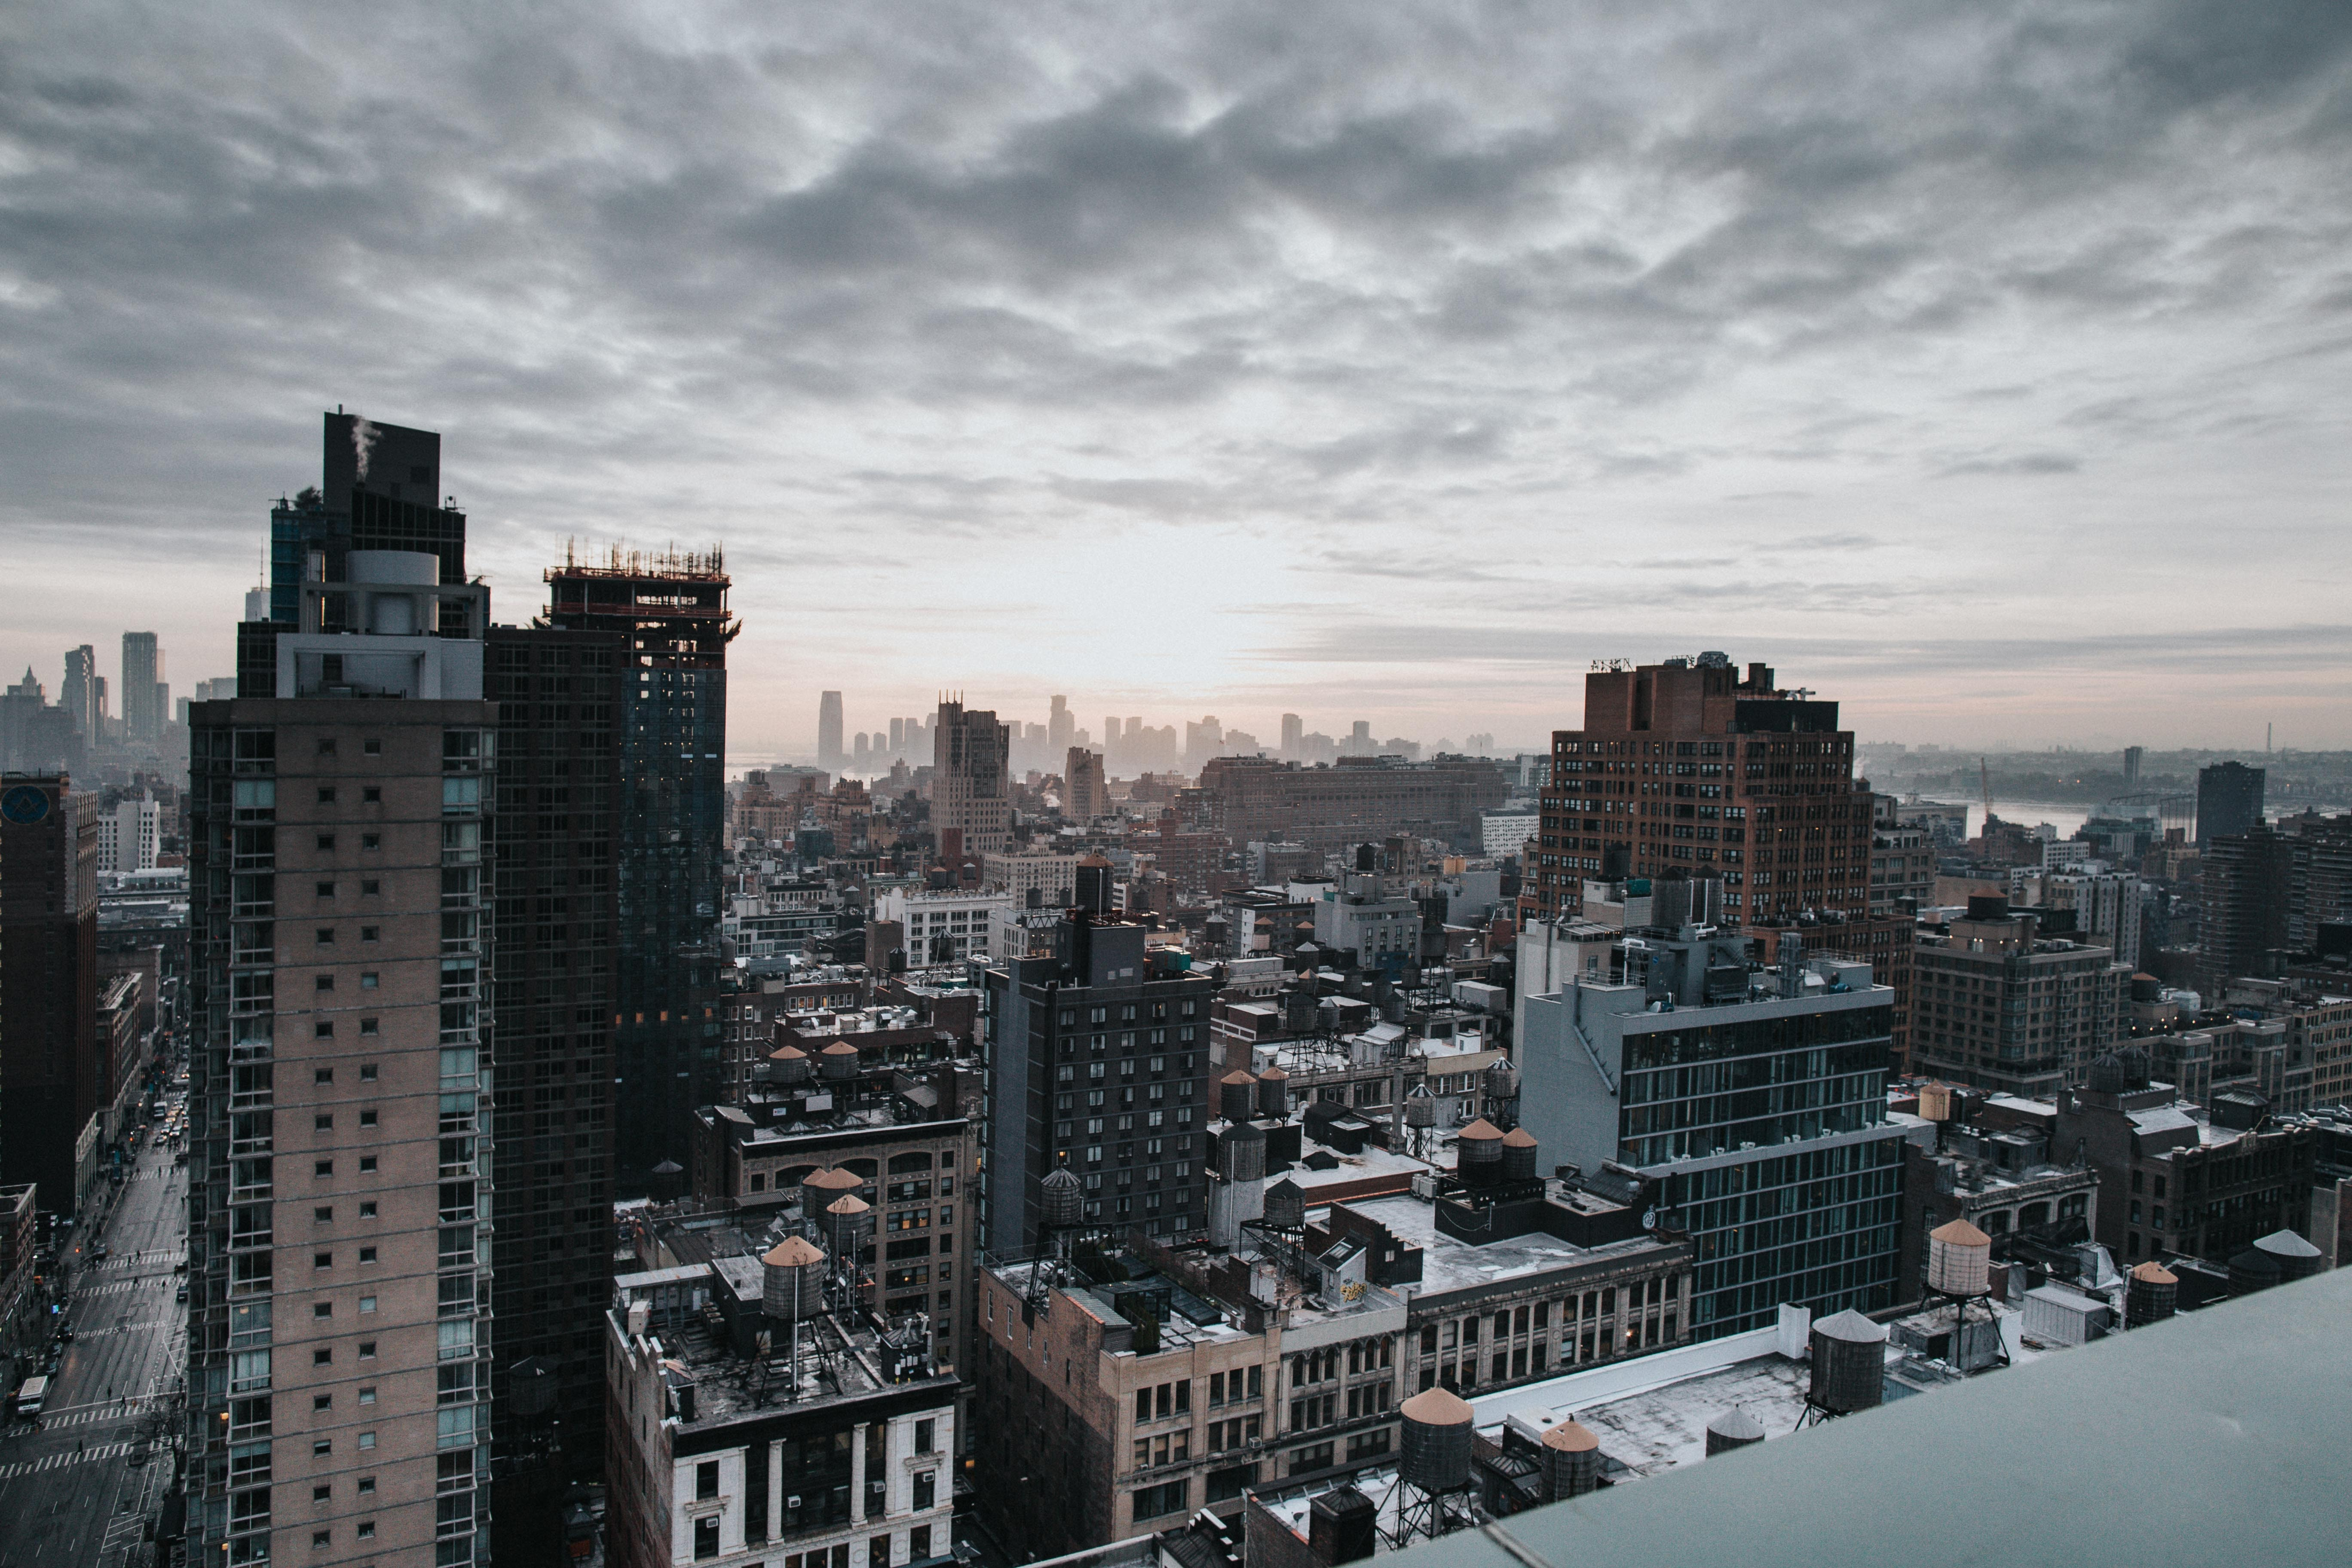 aerial photo of city buildings under cloudy sky